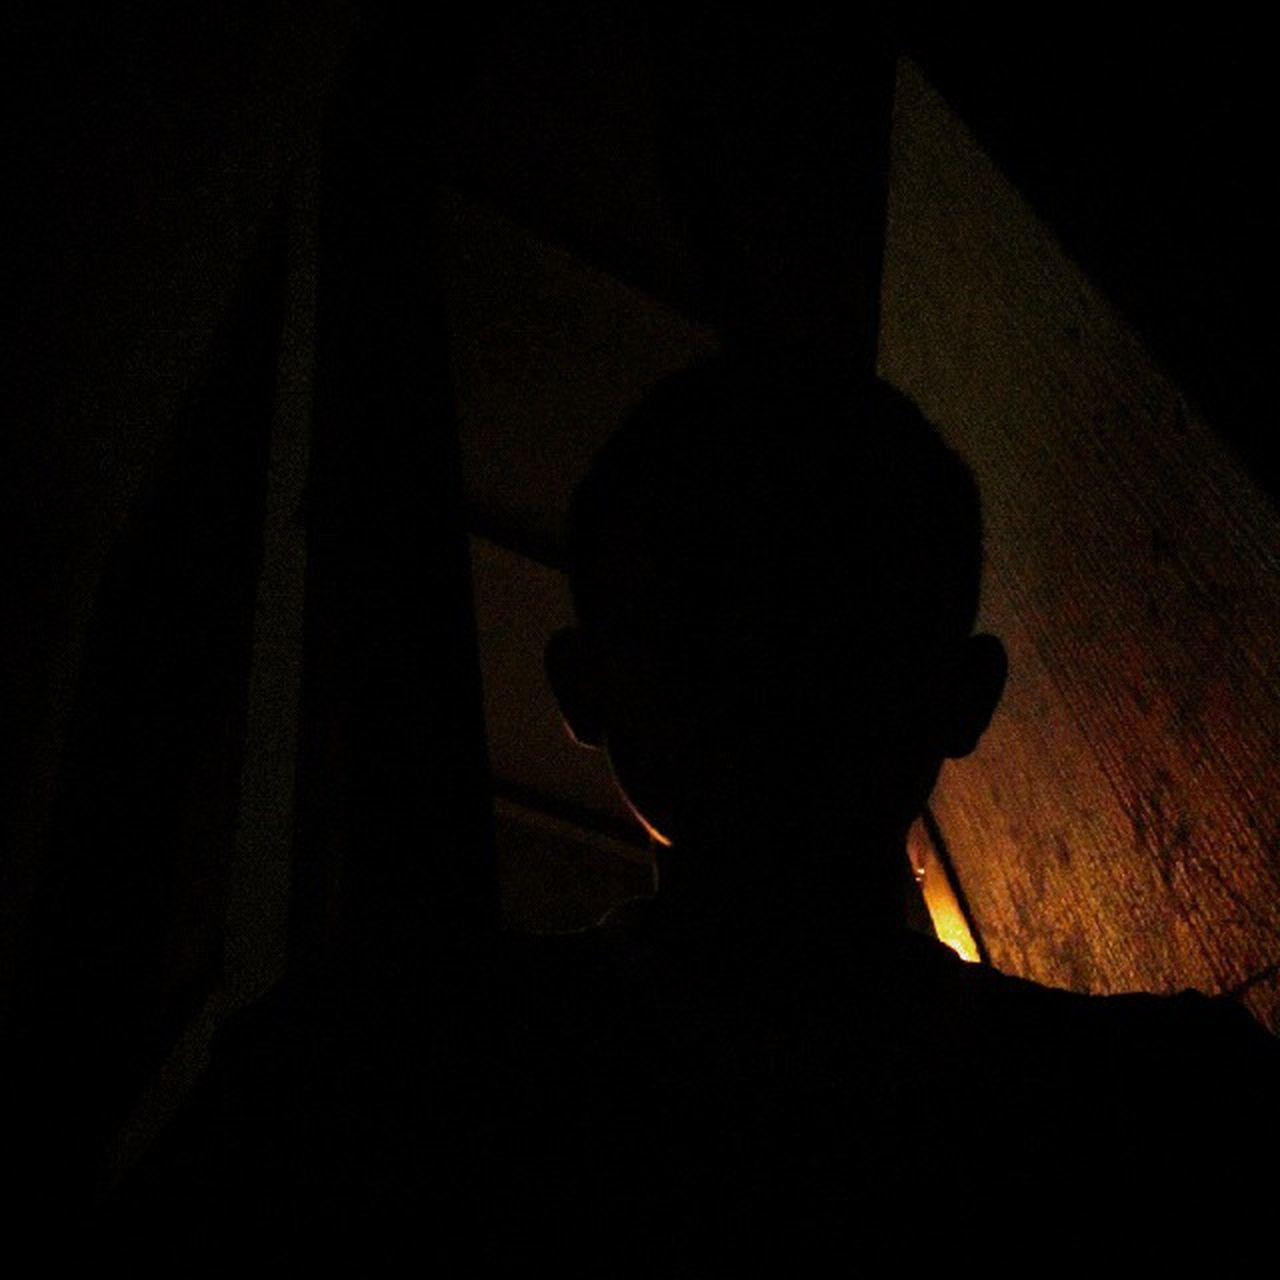 silhouette, one person, shadow, real people, indoors, men, night, people